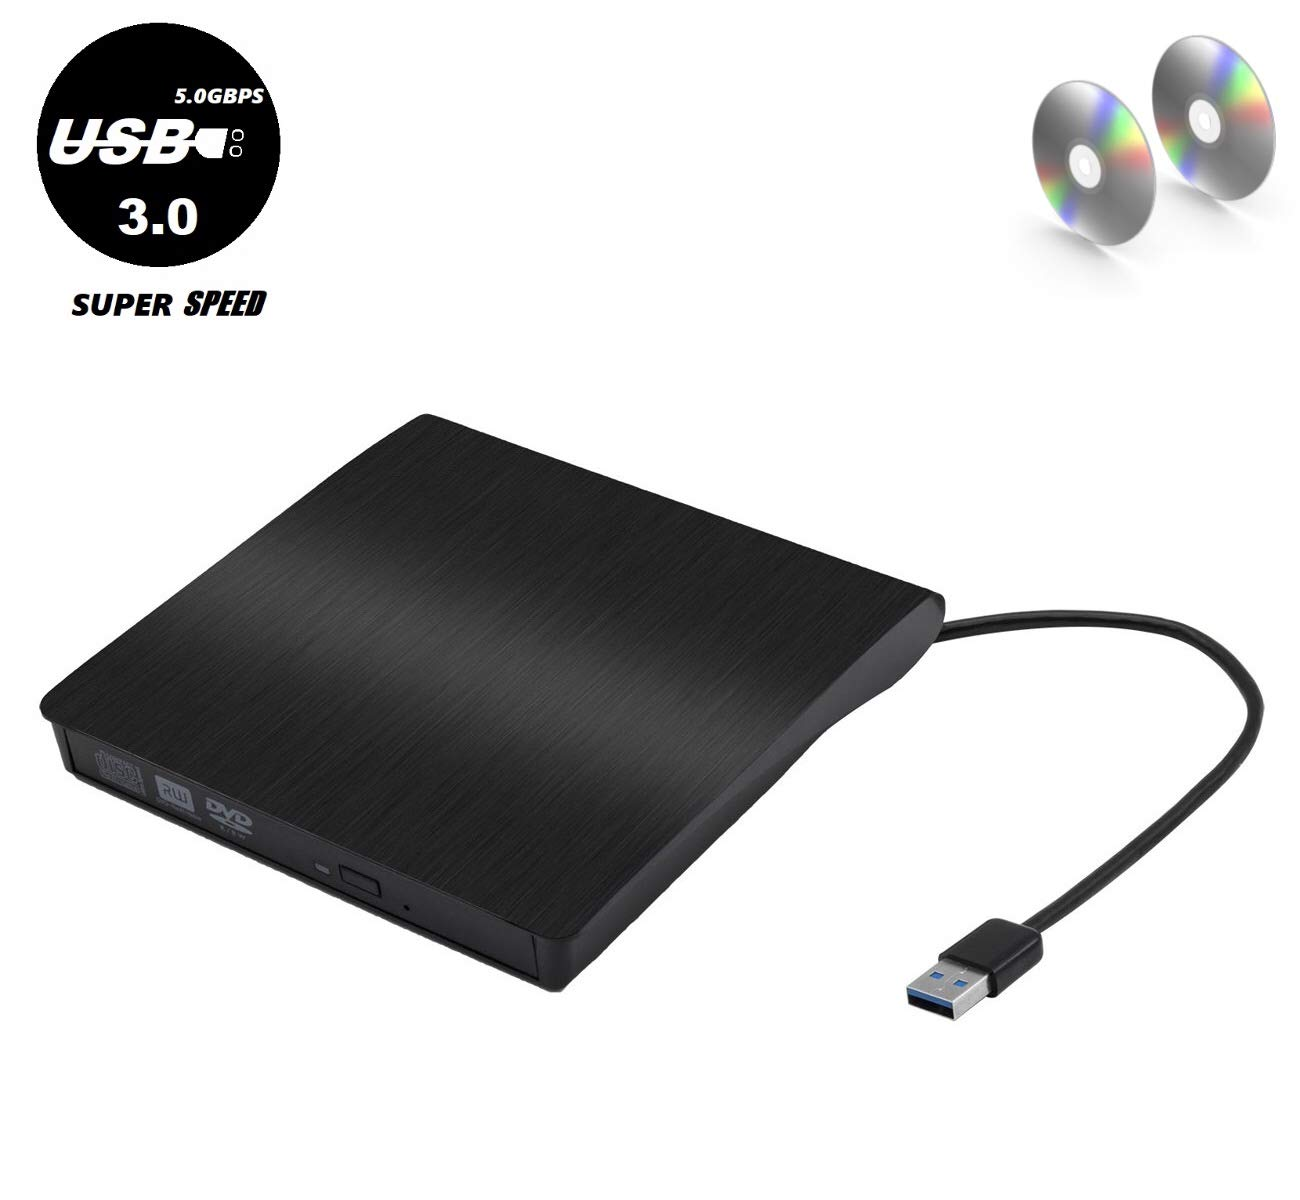 External CD/DVD Drive, USB 3.0 Portable/5.0GBPS, Fits for DVD-R/DVD-RW, DVD+R/DVD+RW, DVD-ROM, Super Speed Data Transfer, Compatible for all Brands and Operating Systems of Laptops. Windows/MAC, Black